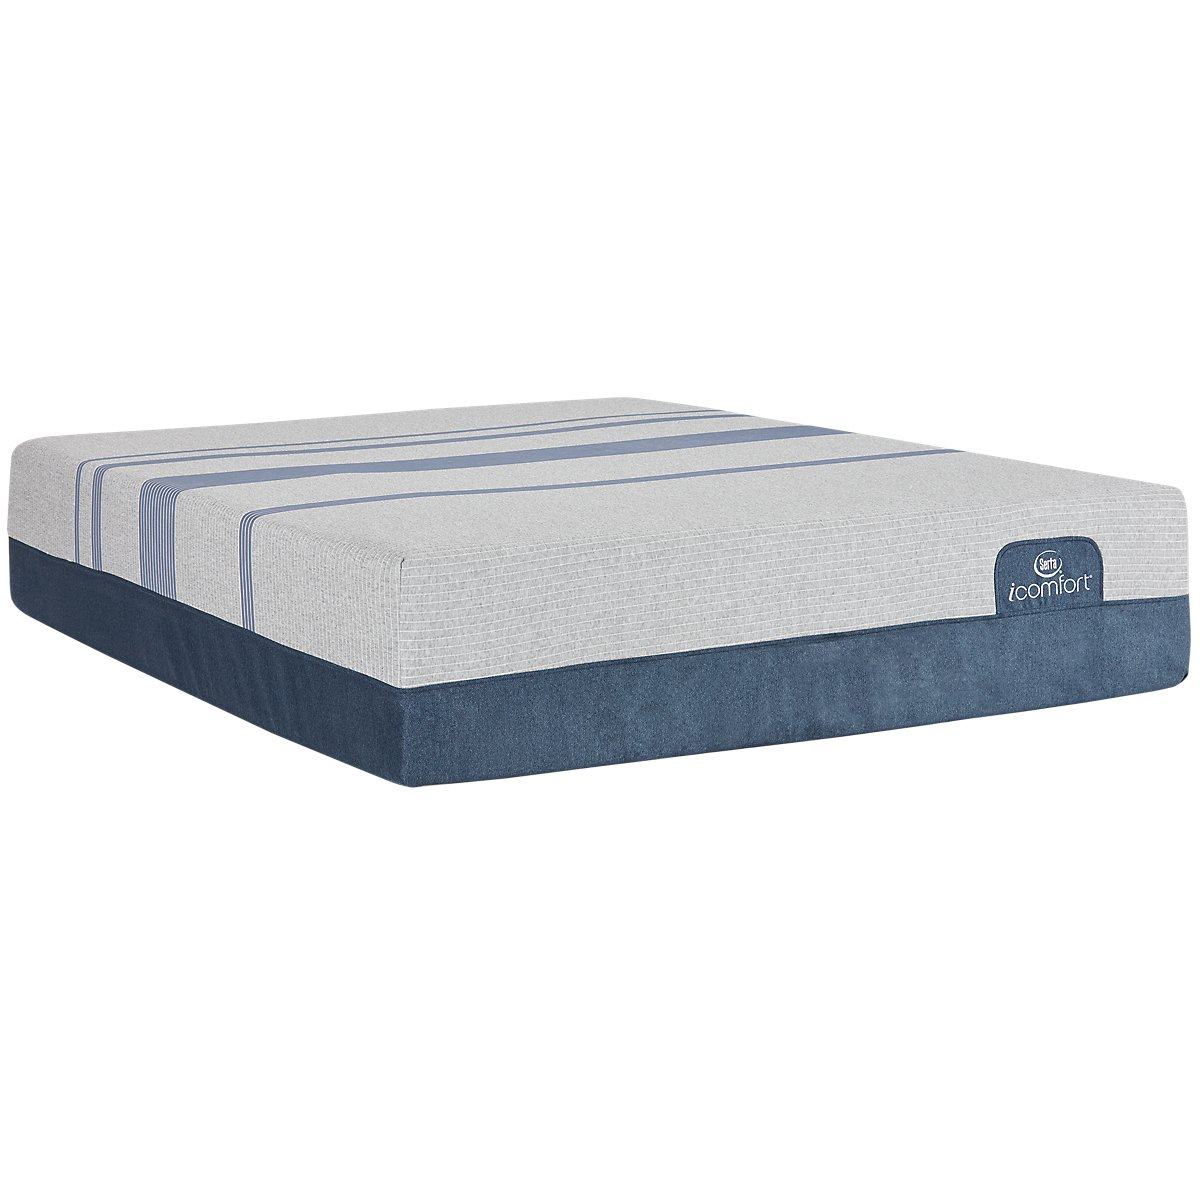 Serta iComfort Blue Max 3000 Plush Mattress